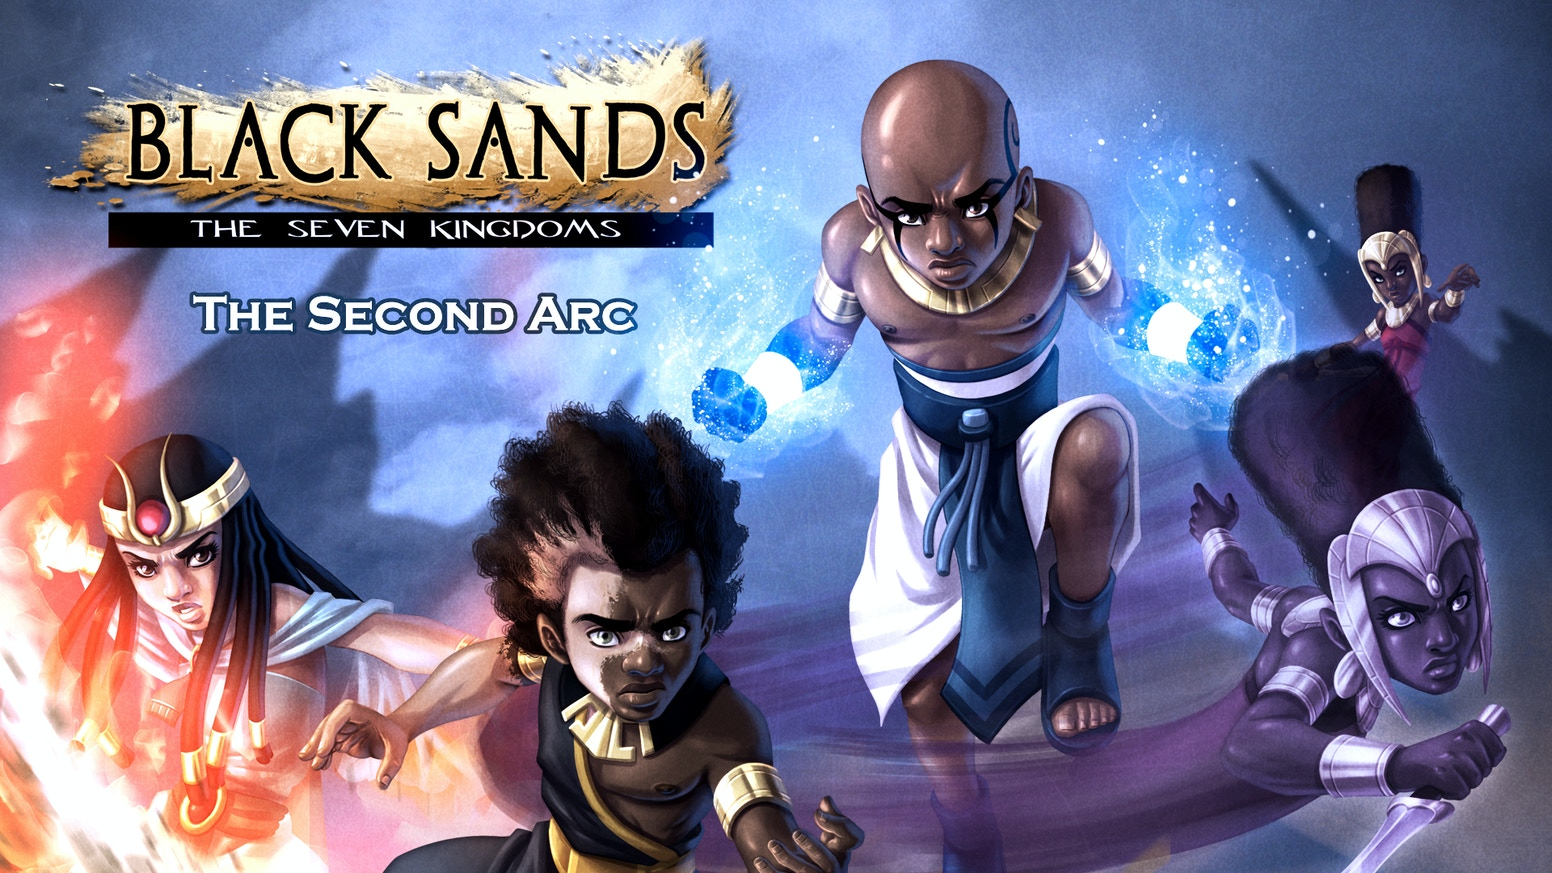 The second arc of the Black Sands saga, an award-winning series endorsed by Michelle Obama, Publisher's Weekly, and Bleeding Cool